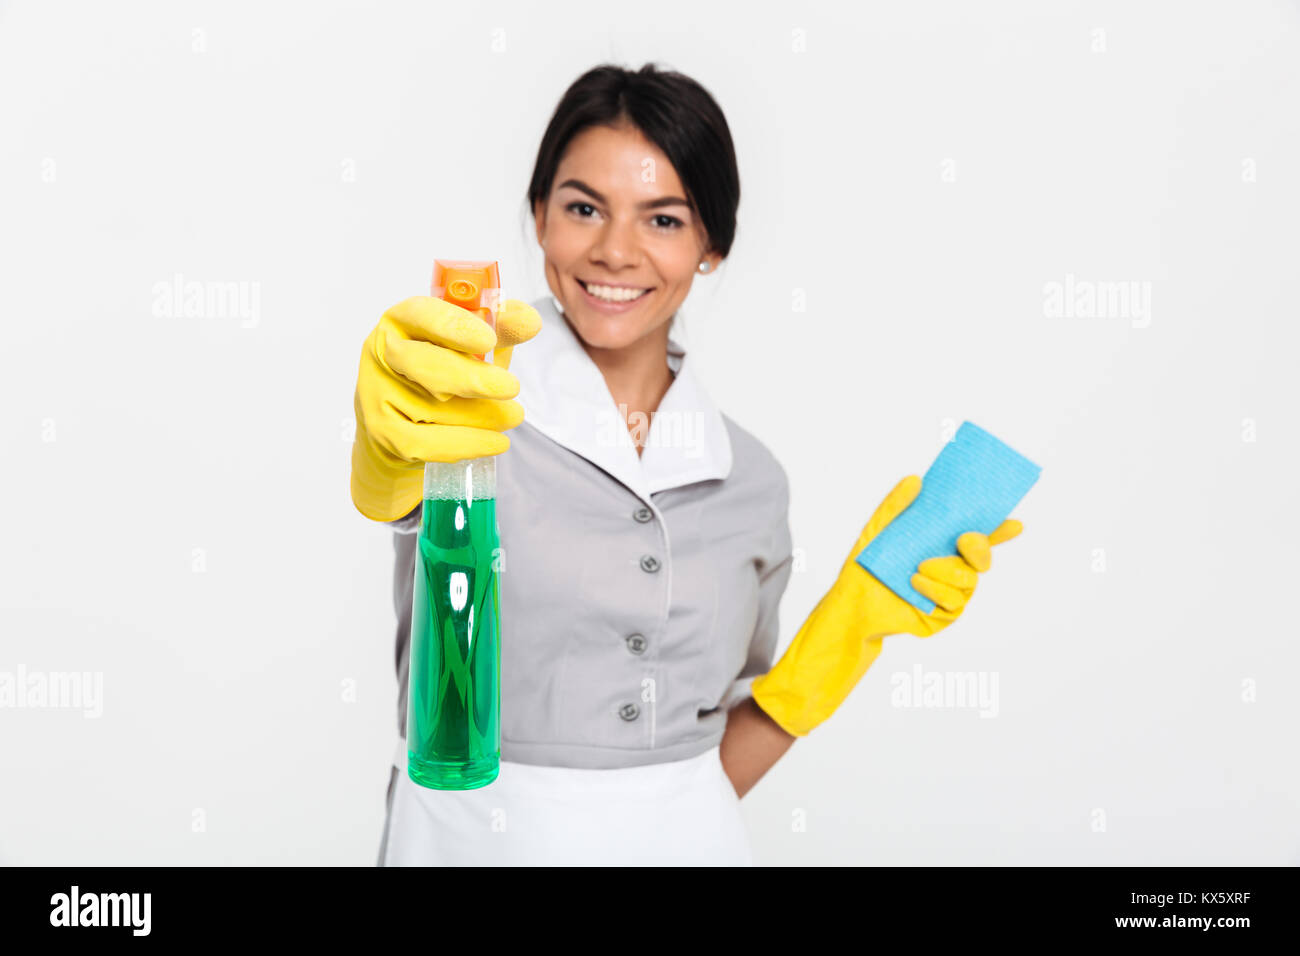 Close-up portrait of professional housekeeper in uniform and yellow rubber gloves spraying the cleaner on you, isolated Stock Photo